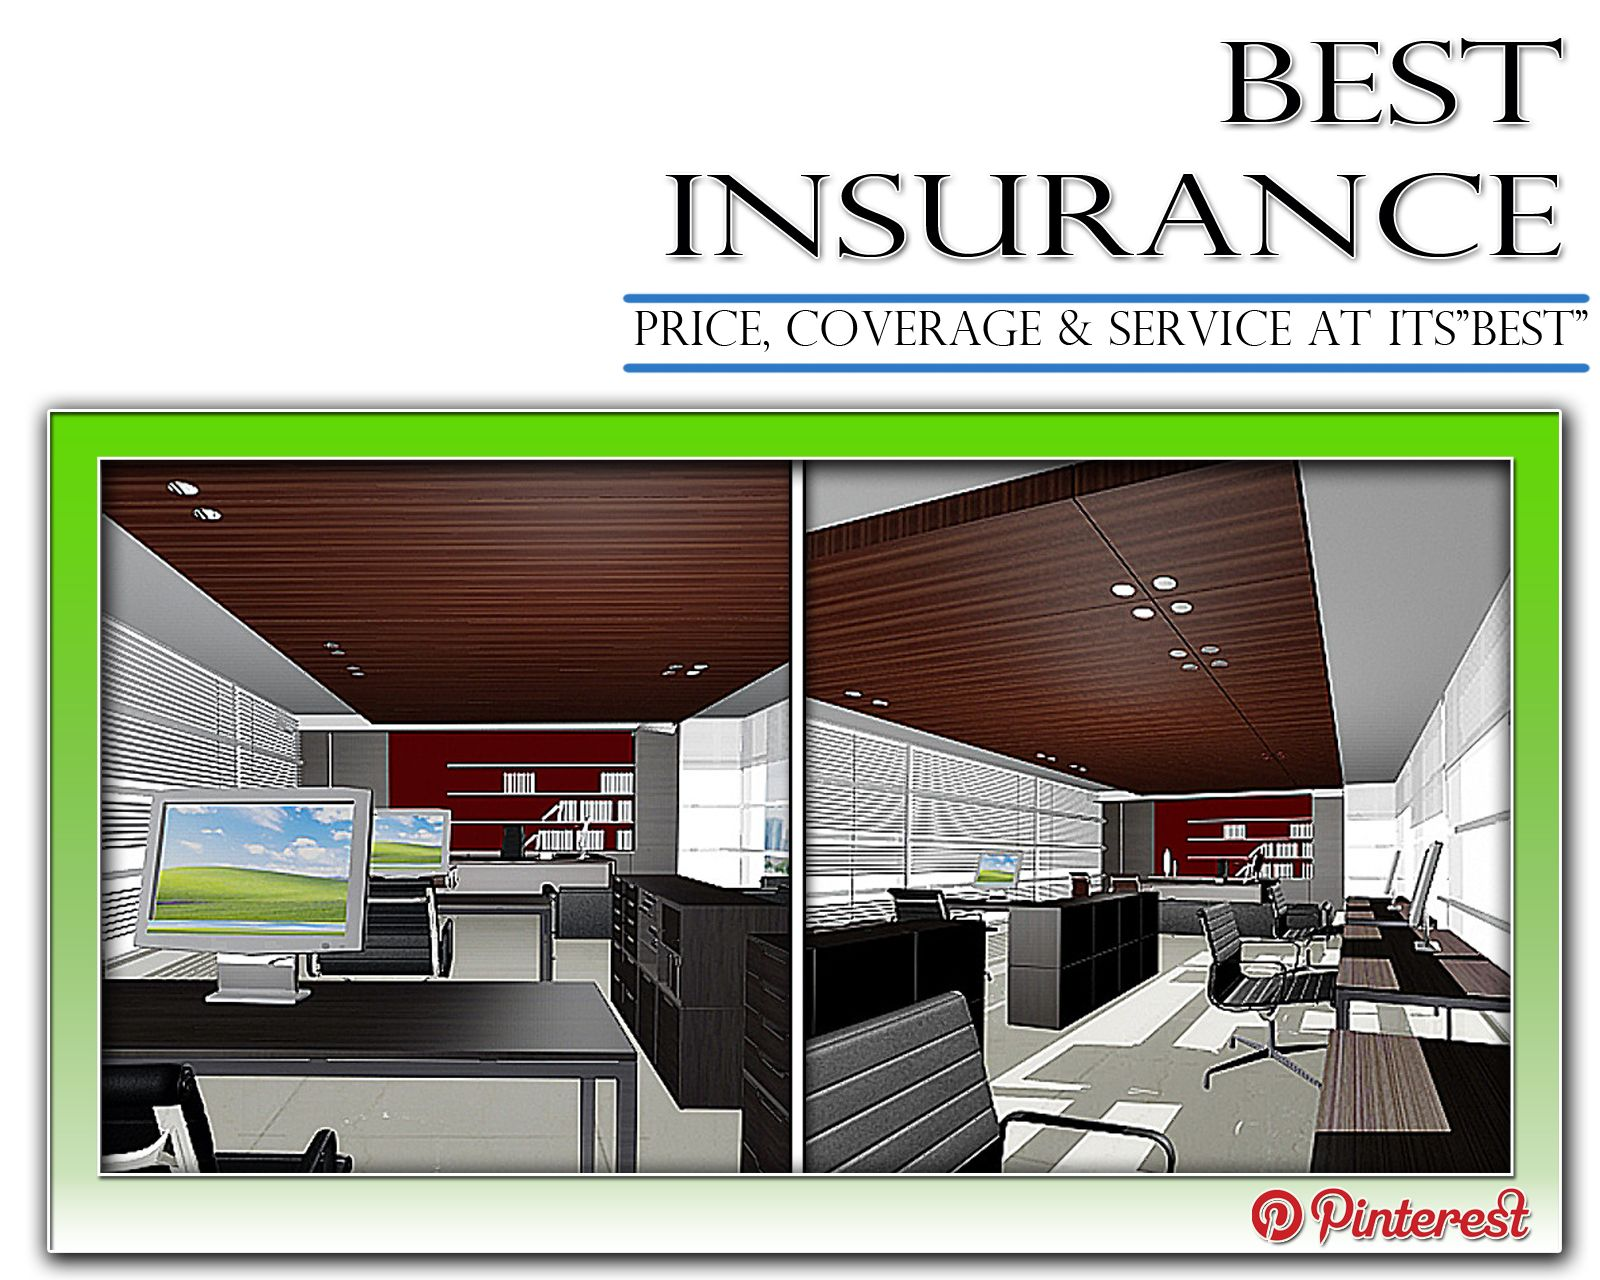 Automobileinsuranceft Lauderdale Office Insurance Policy With